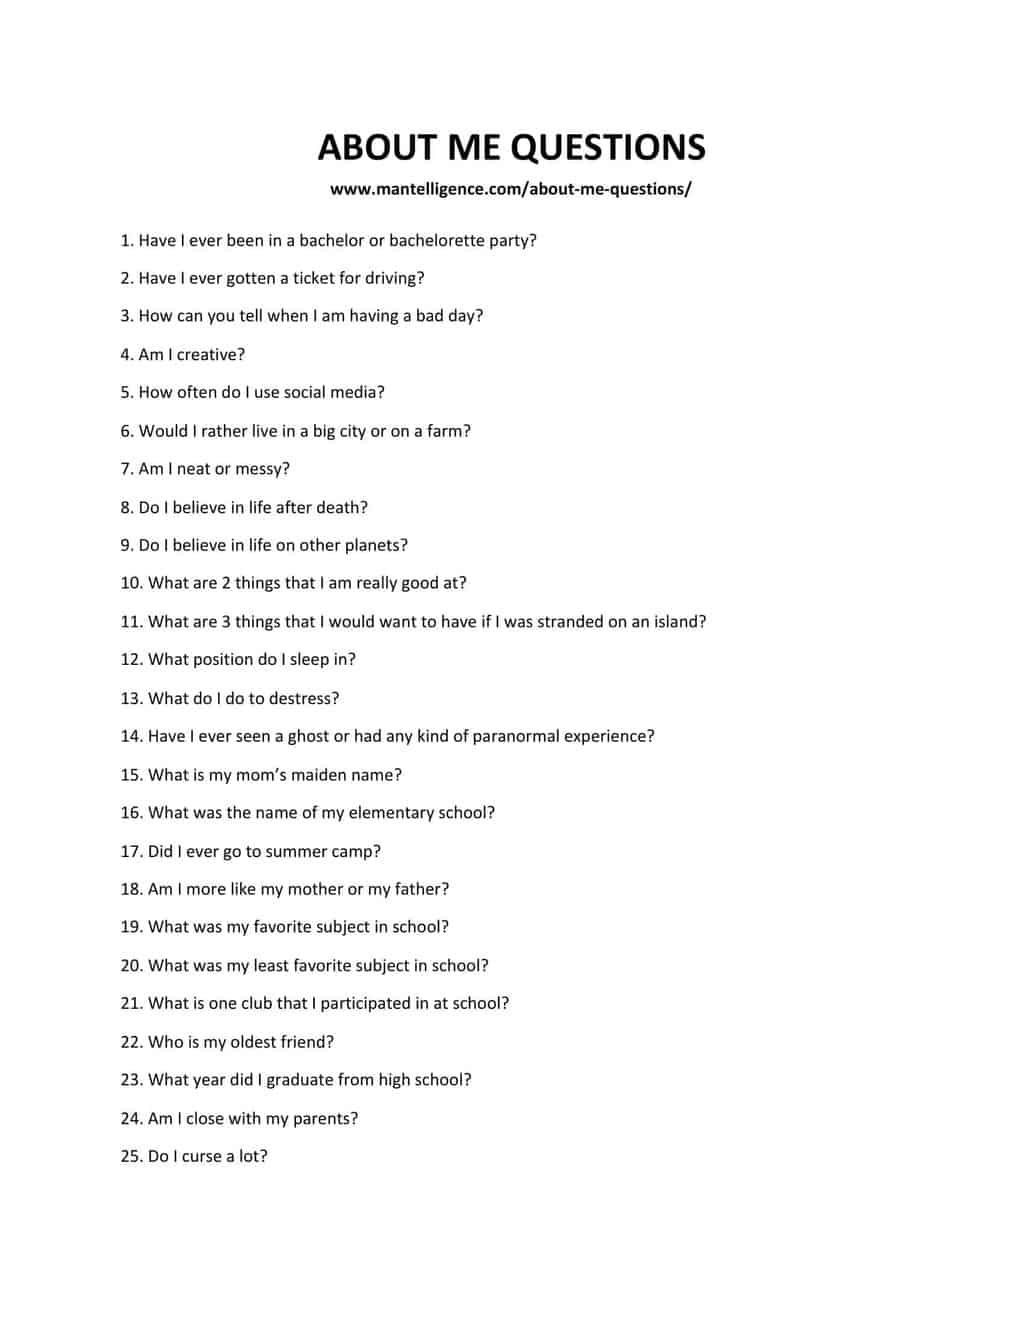 ABOUT ME QUESTIONS-1